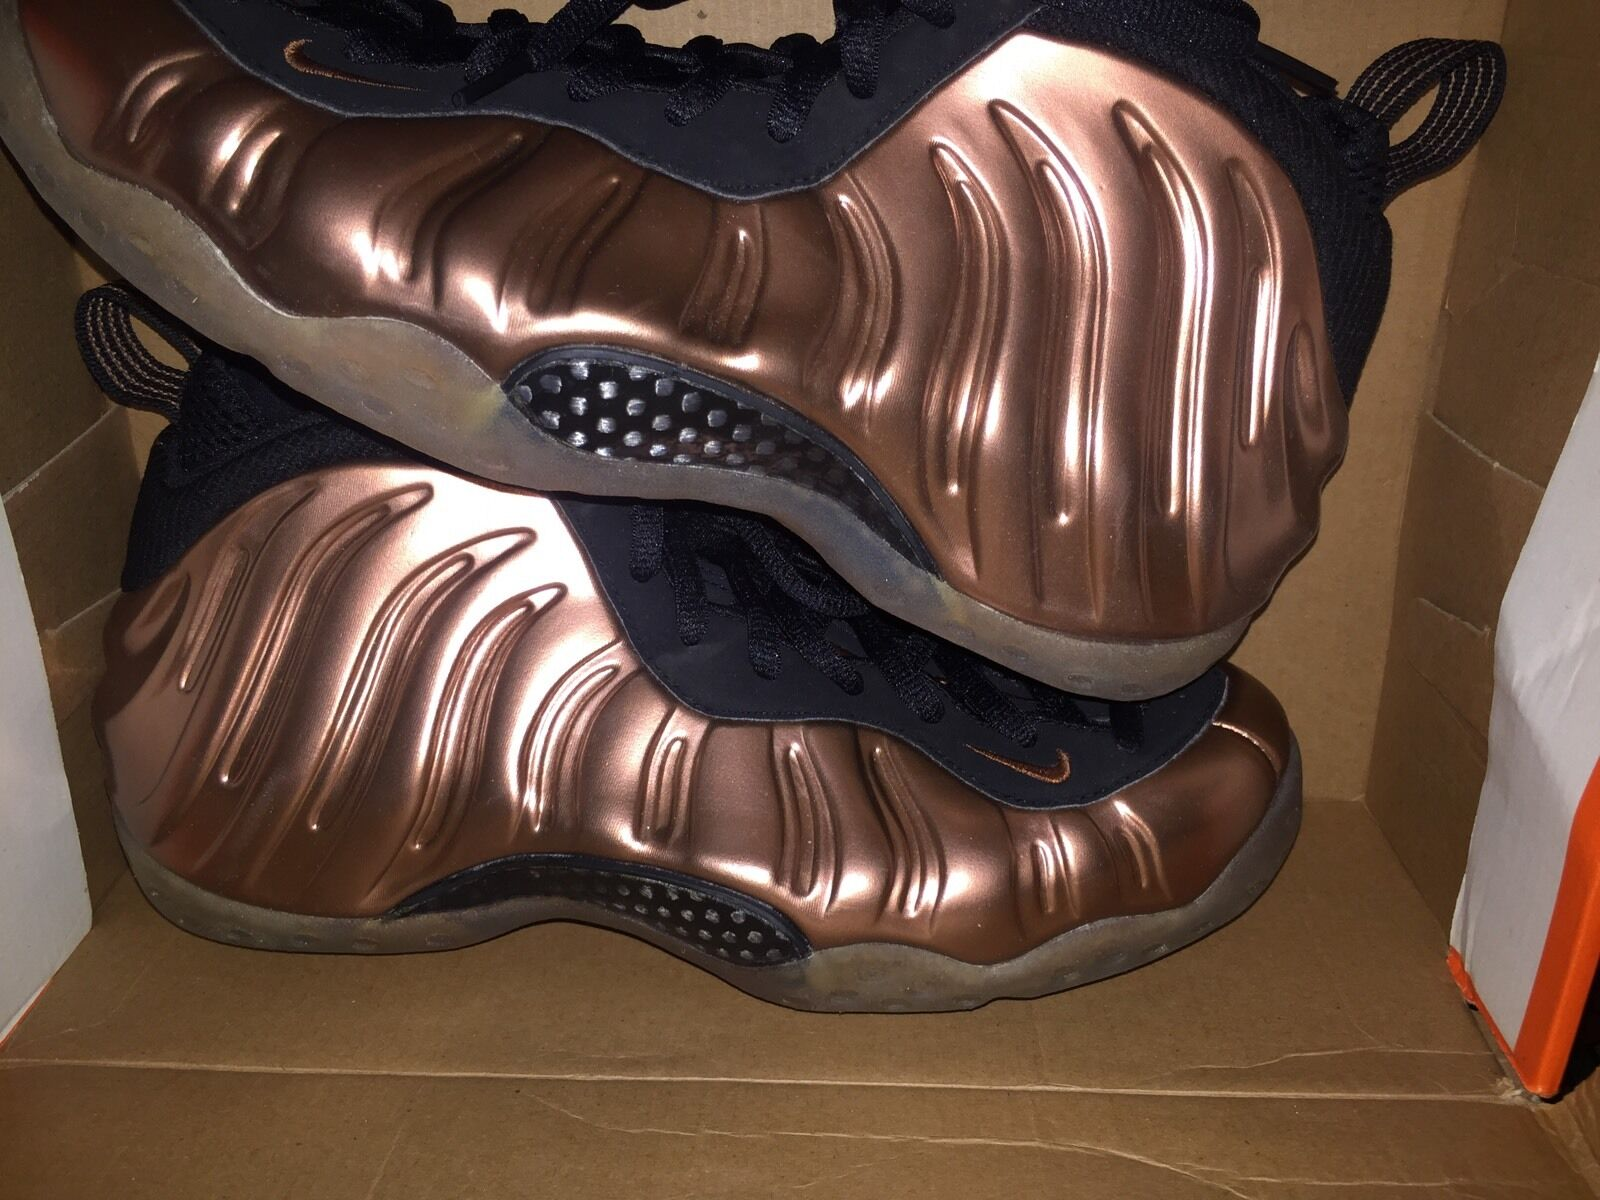 Nike Foamposite Copper  Cheap and fashionable